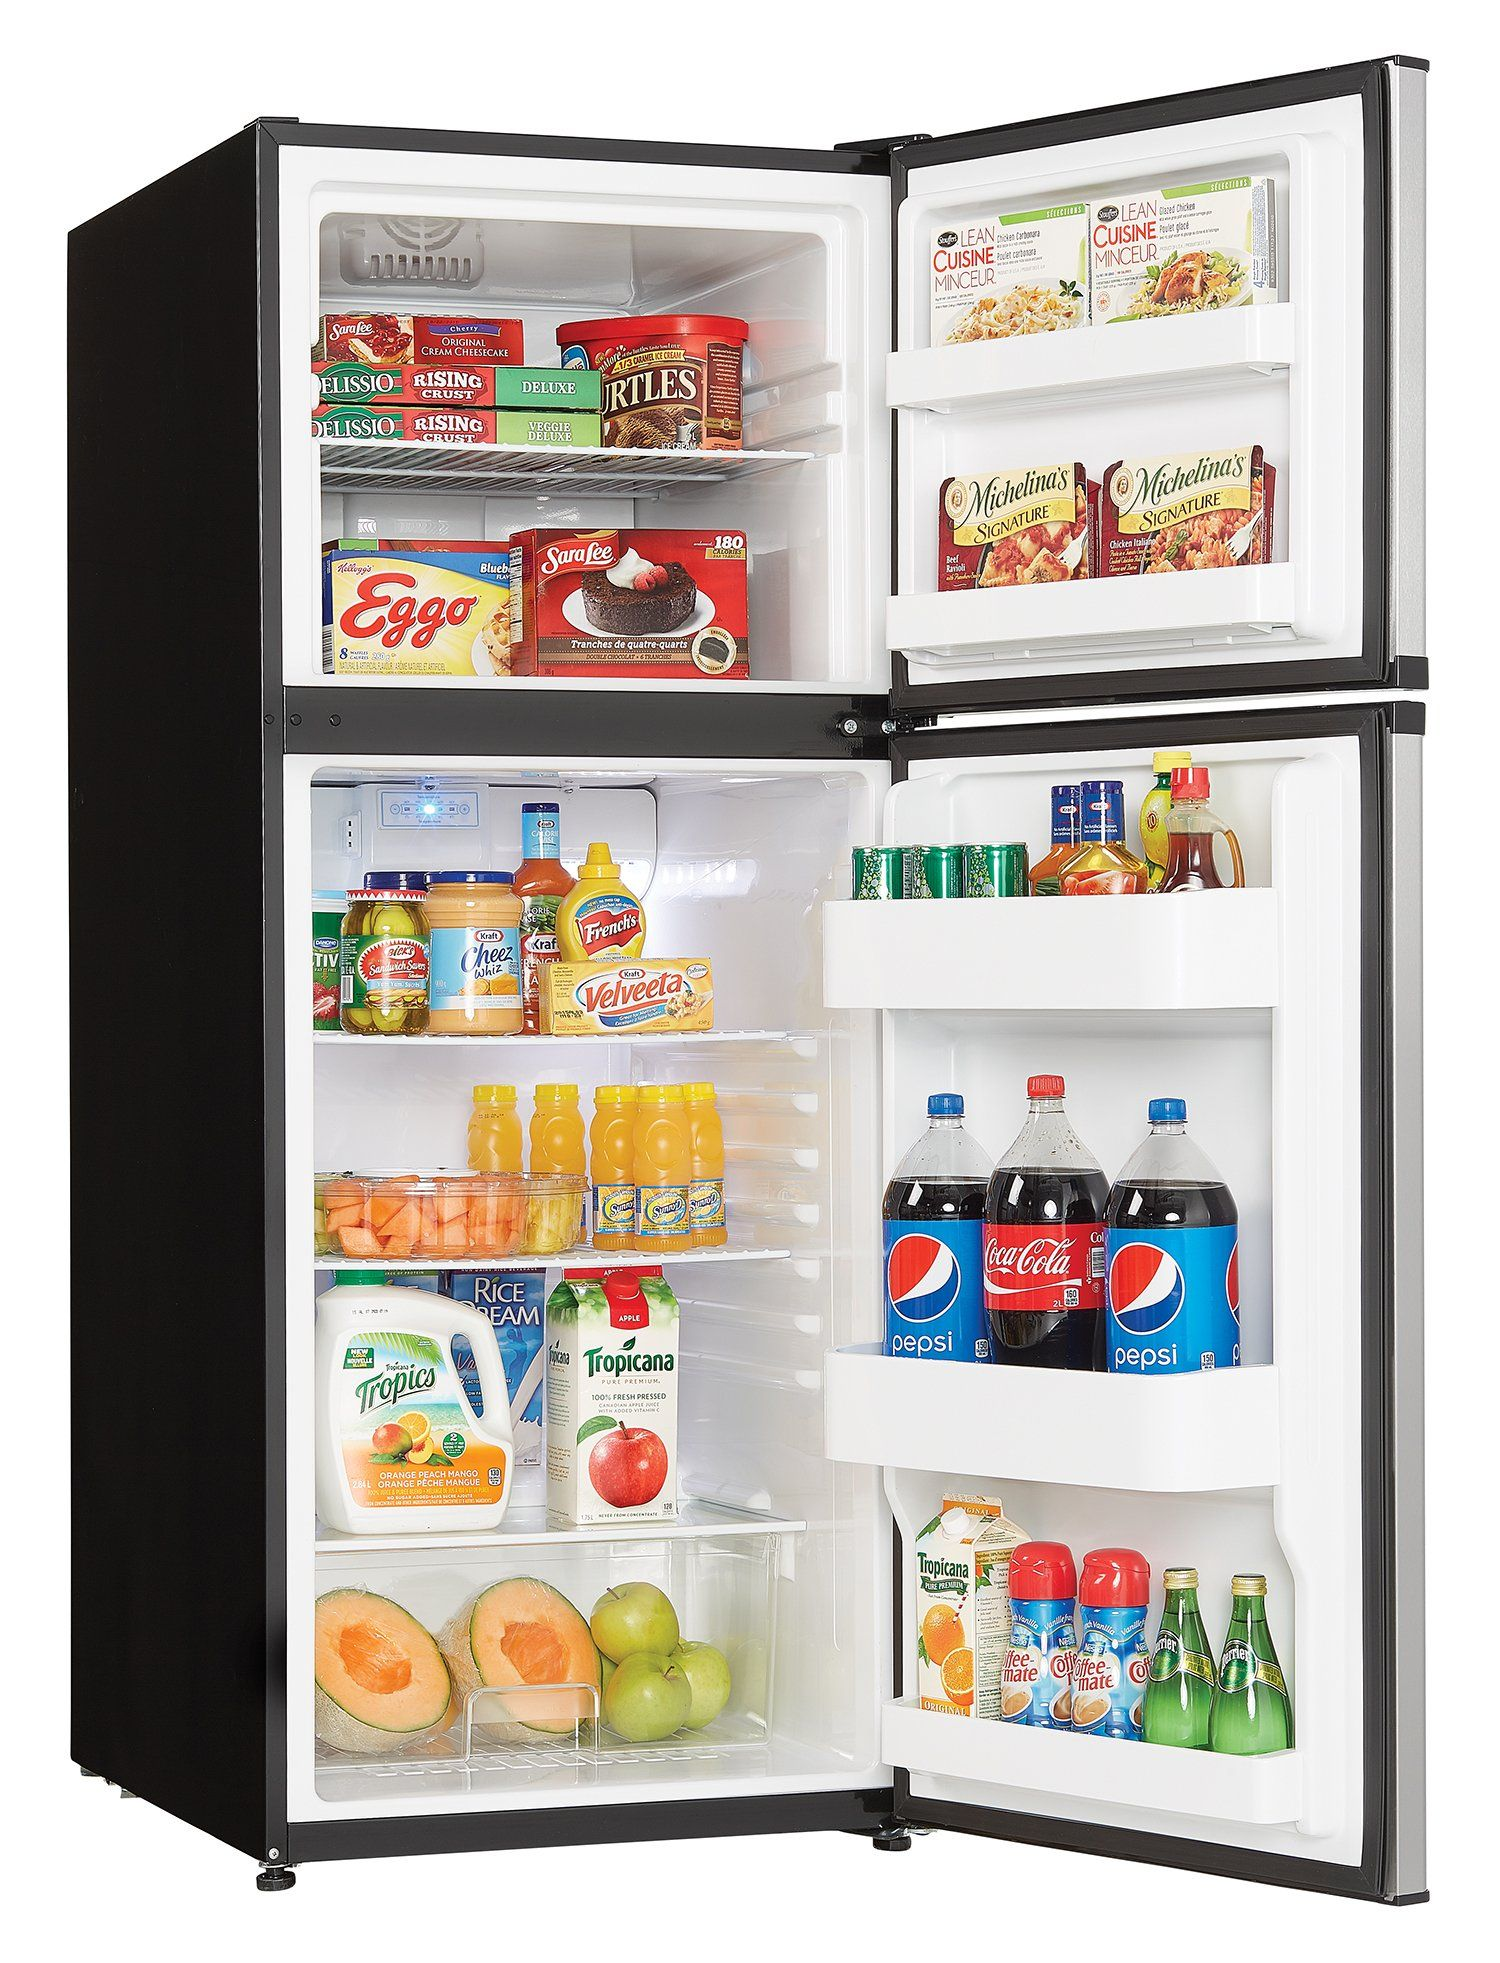 Are You Living In Small Space Need A Second Refrigerator For